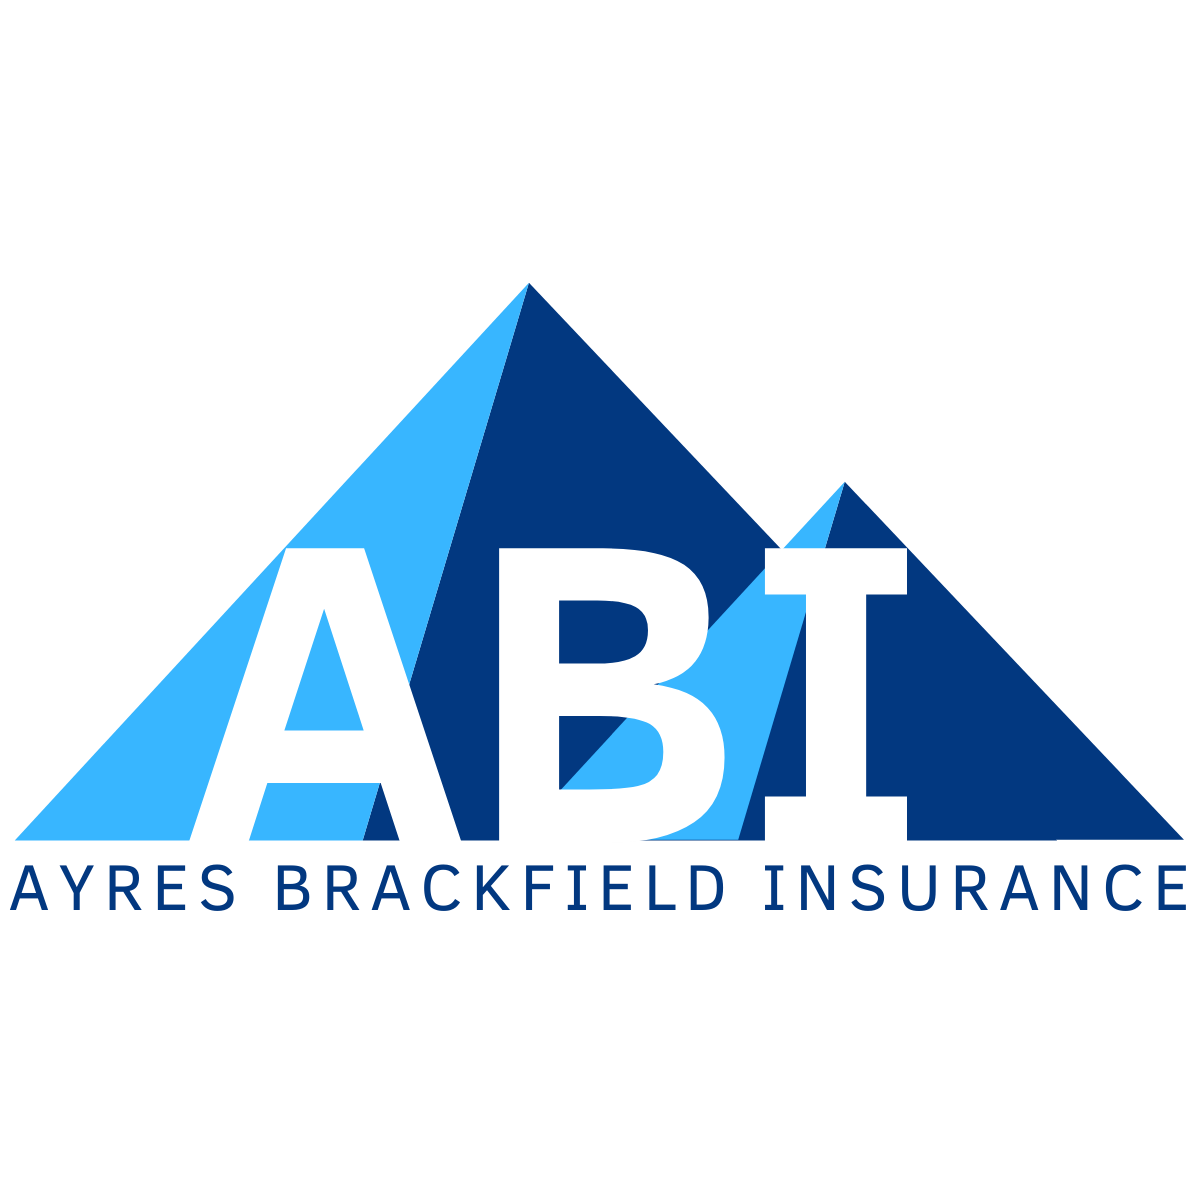 ayresbrackfieldinsurance logo knoxville insurance commercial